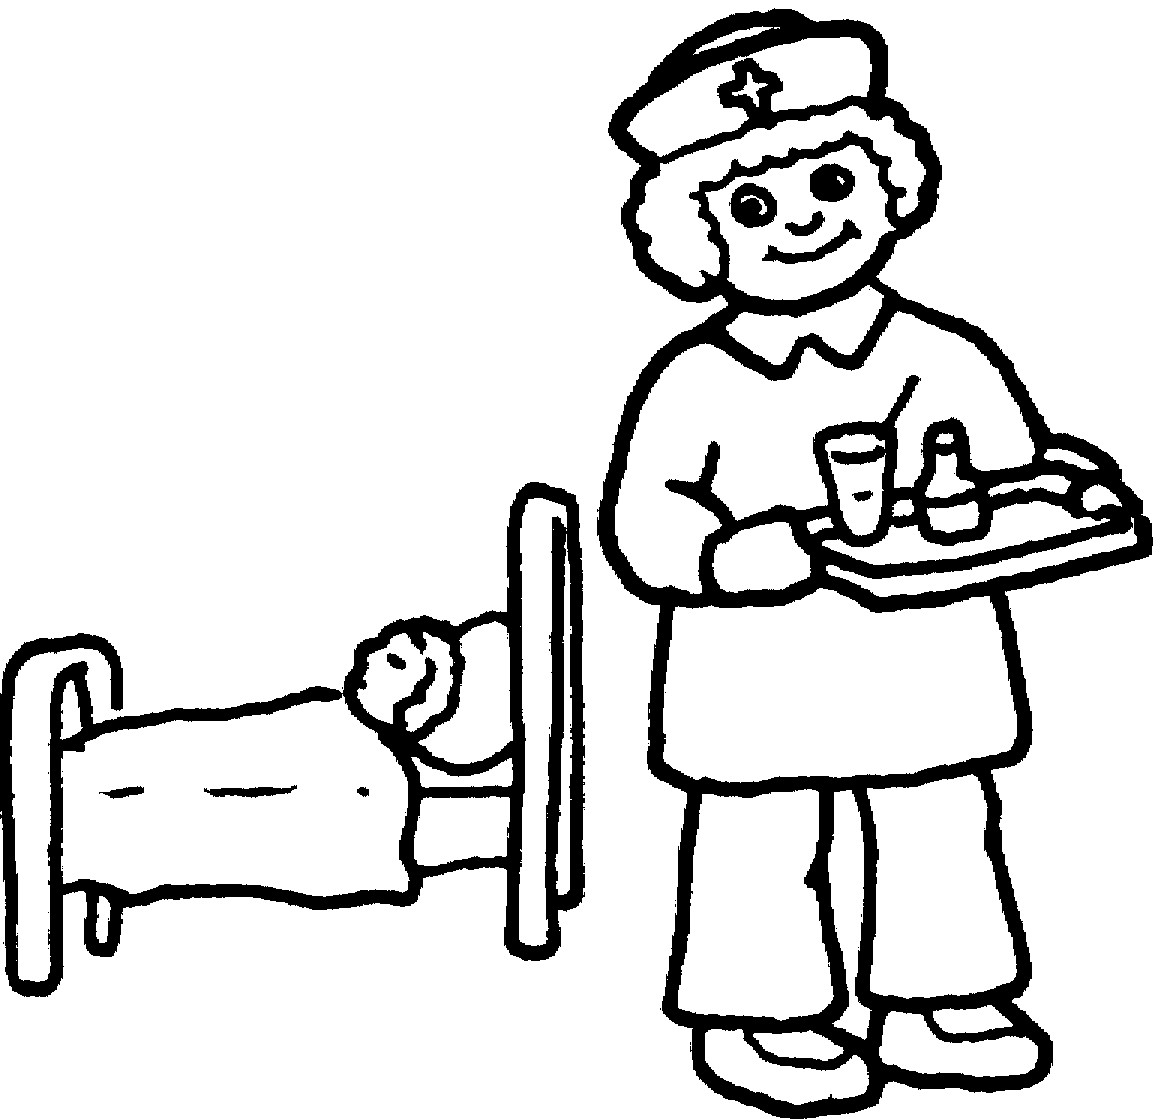 1160x1119 Nurse Coloring Pages Kindergarten New For Kids To